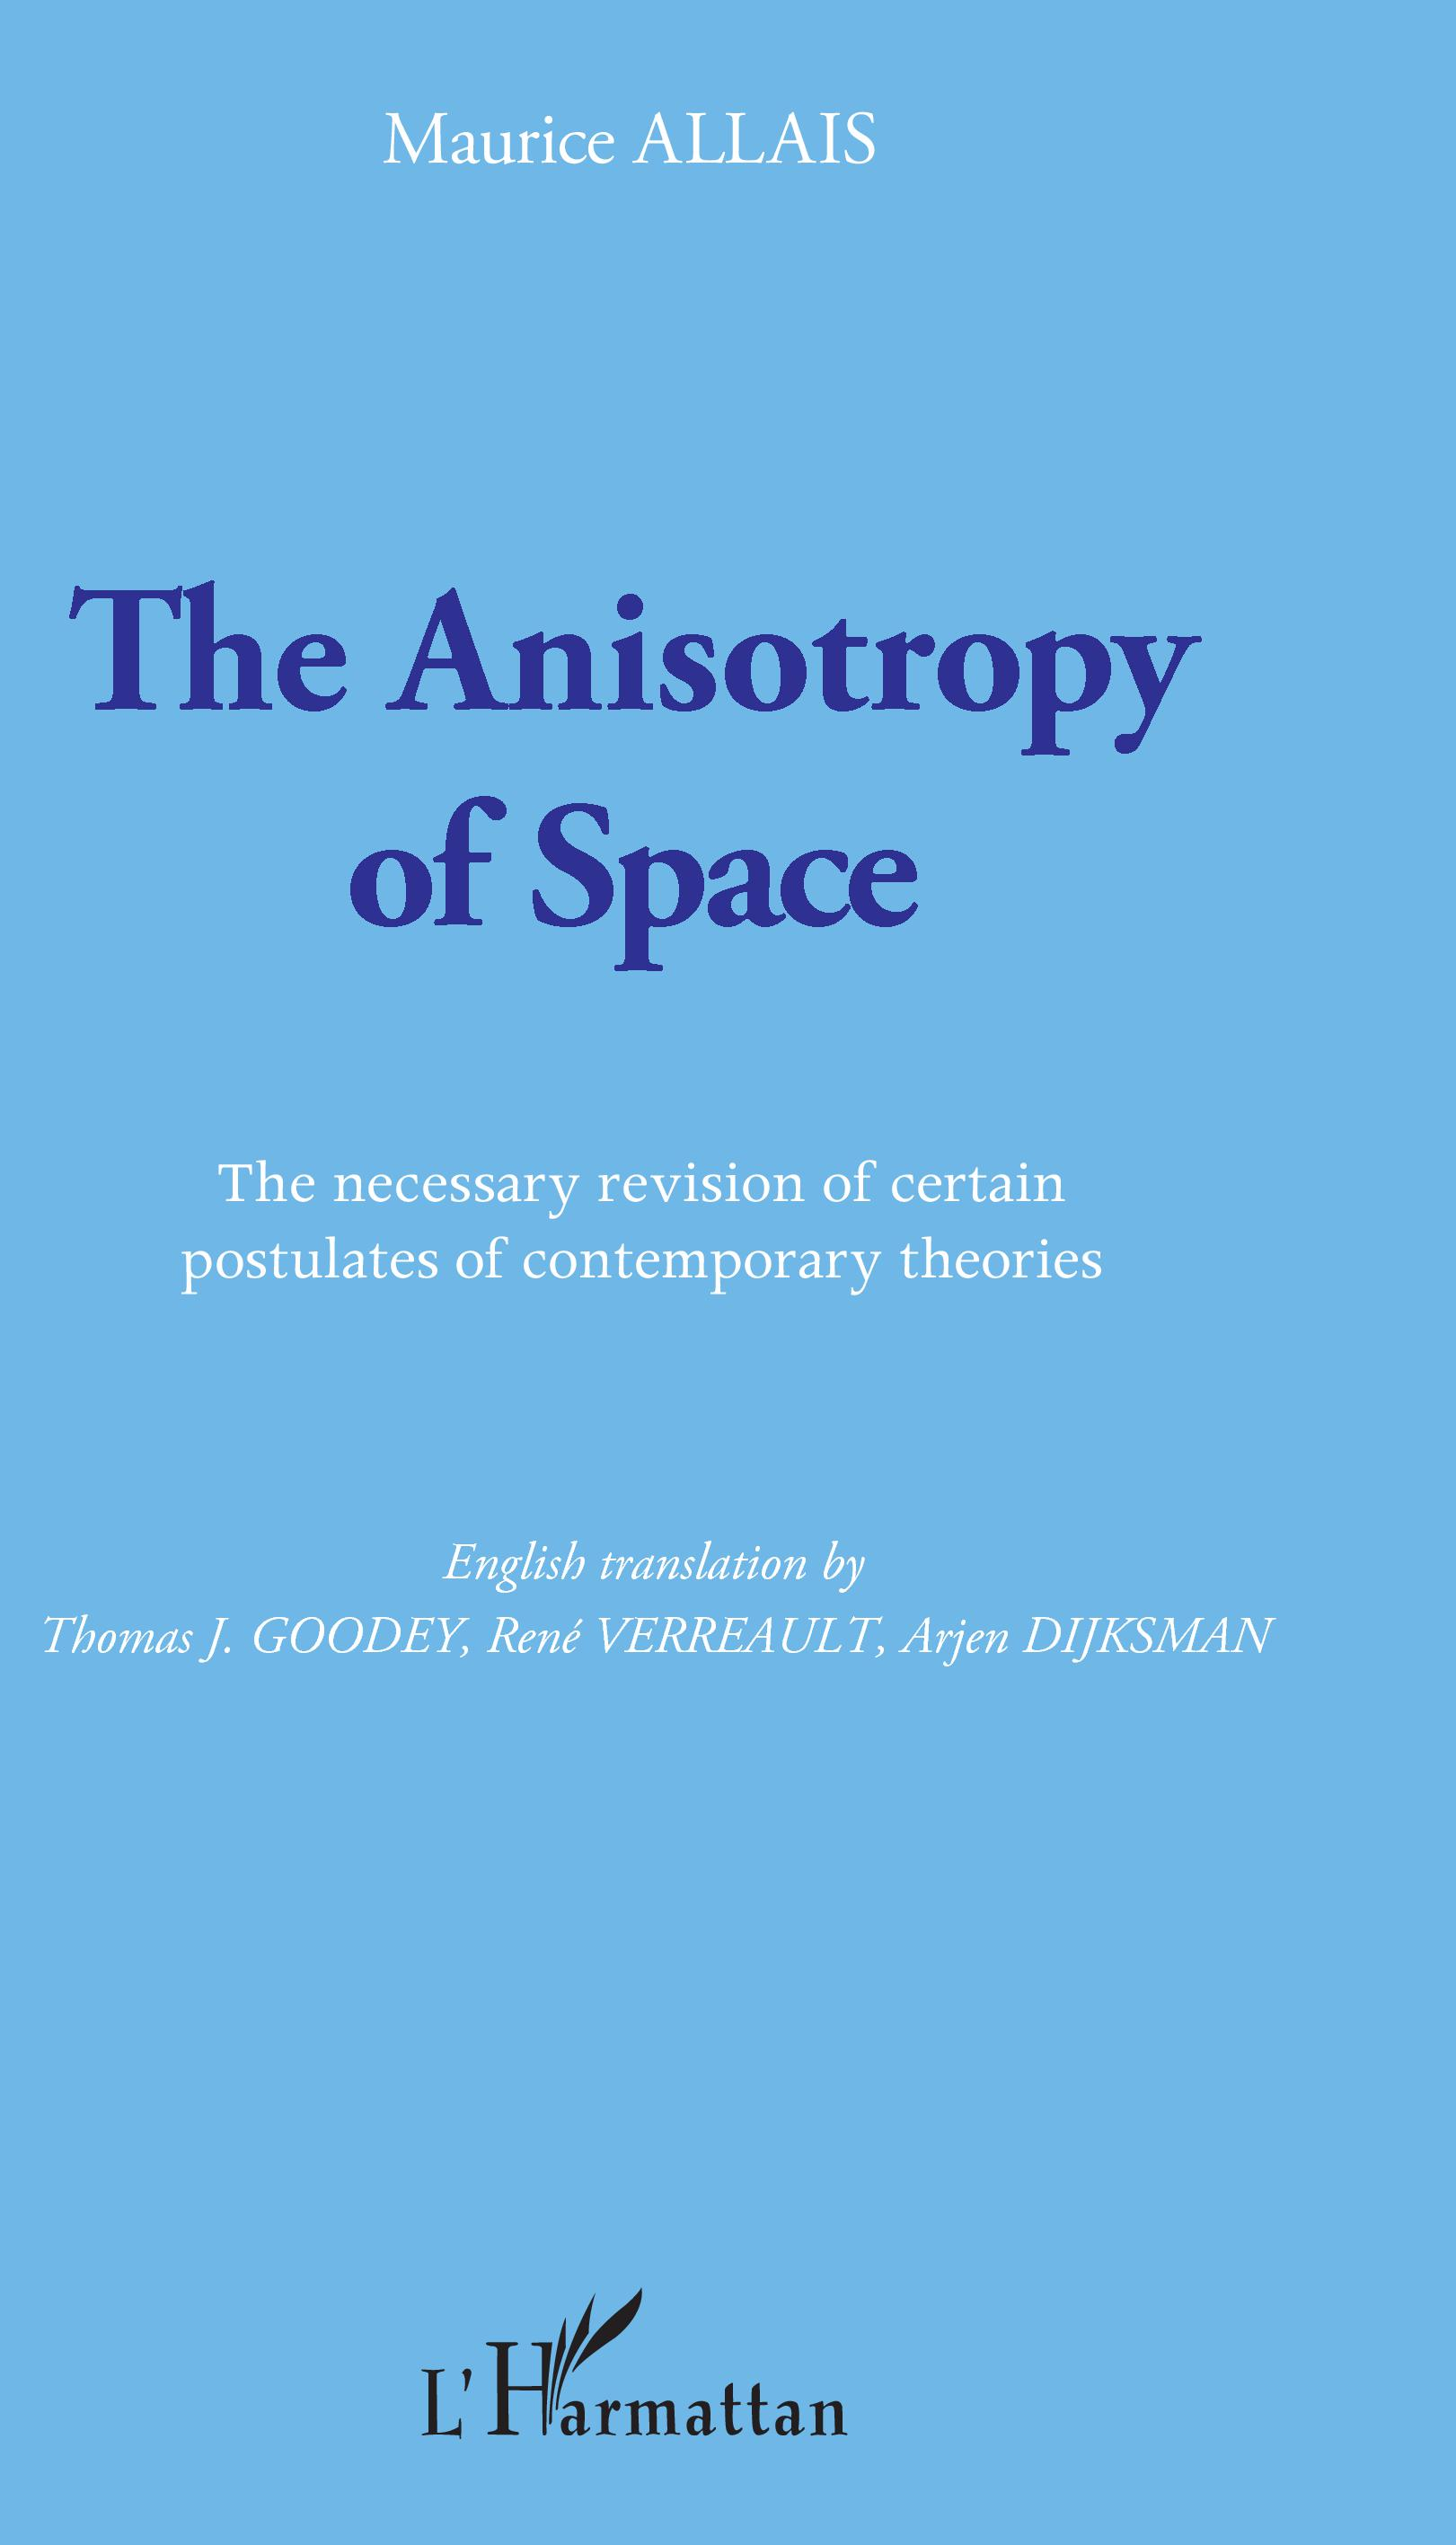 The Anisotropy of